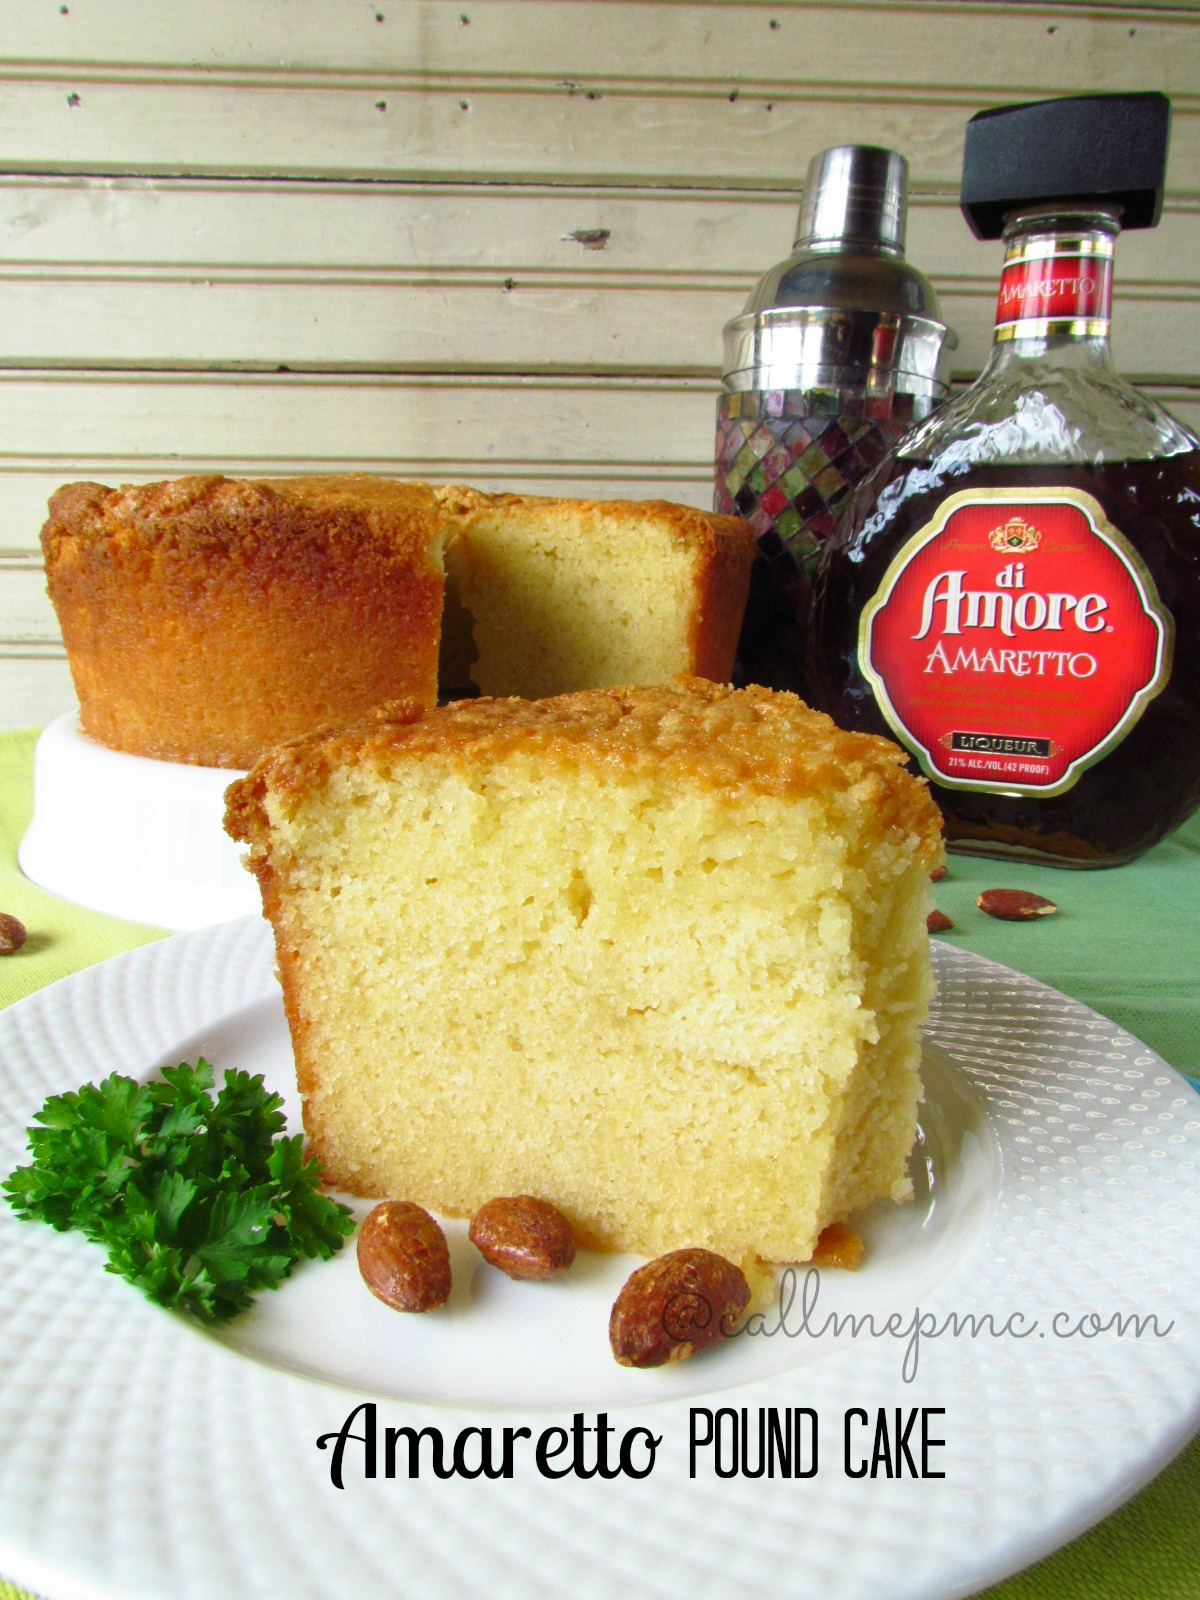 amaretto pound cake - Classic Pound take is kicked up with the addition of Amaretto. Great almond flavor! Doesn't taste like alcohol!